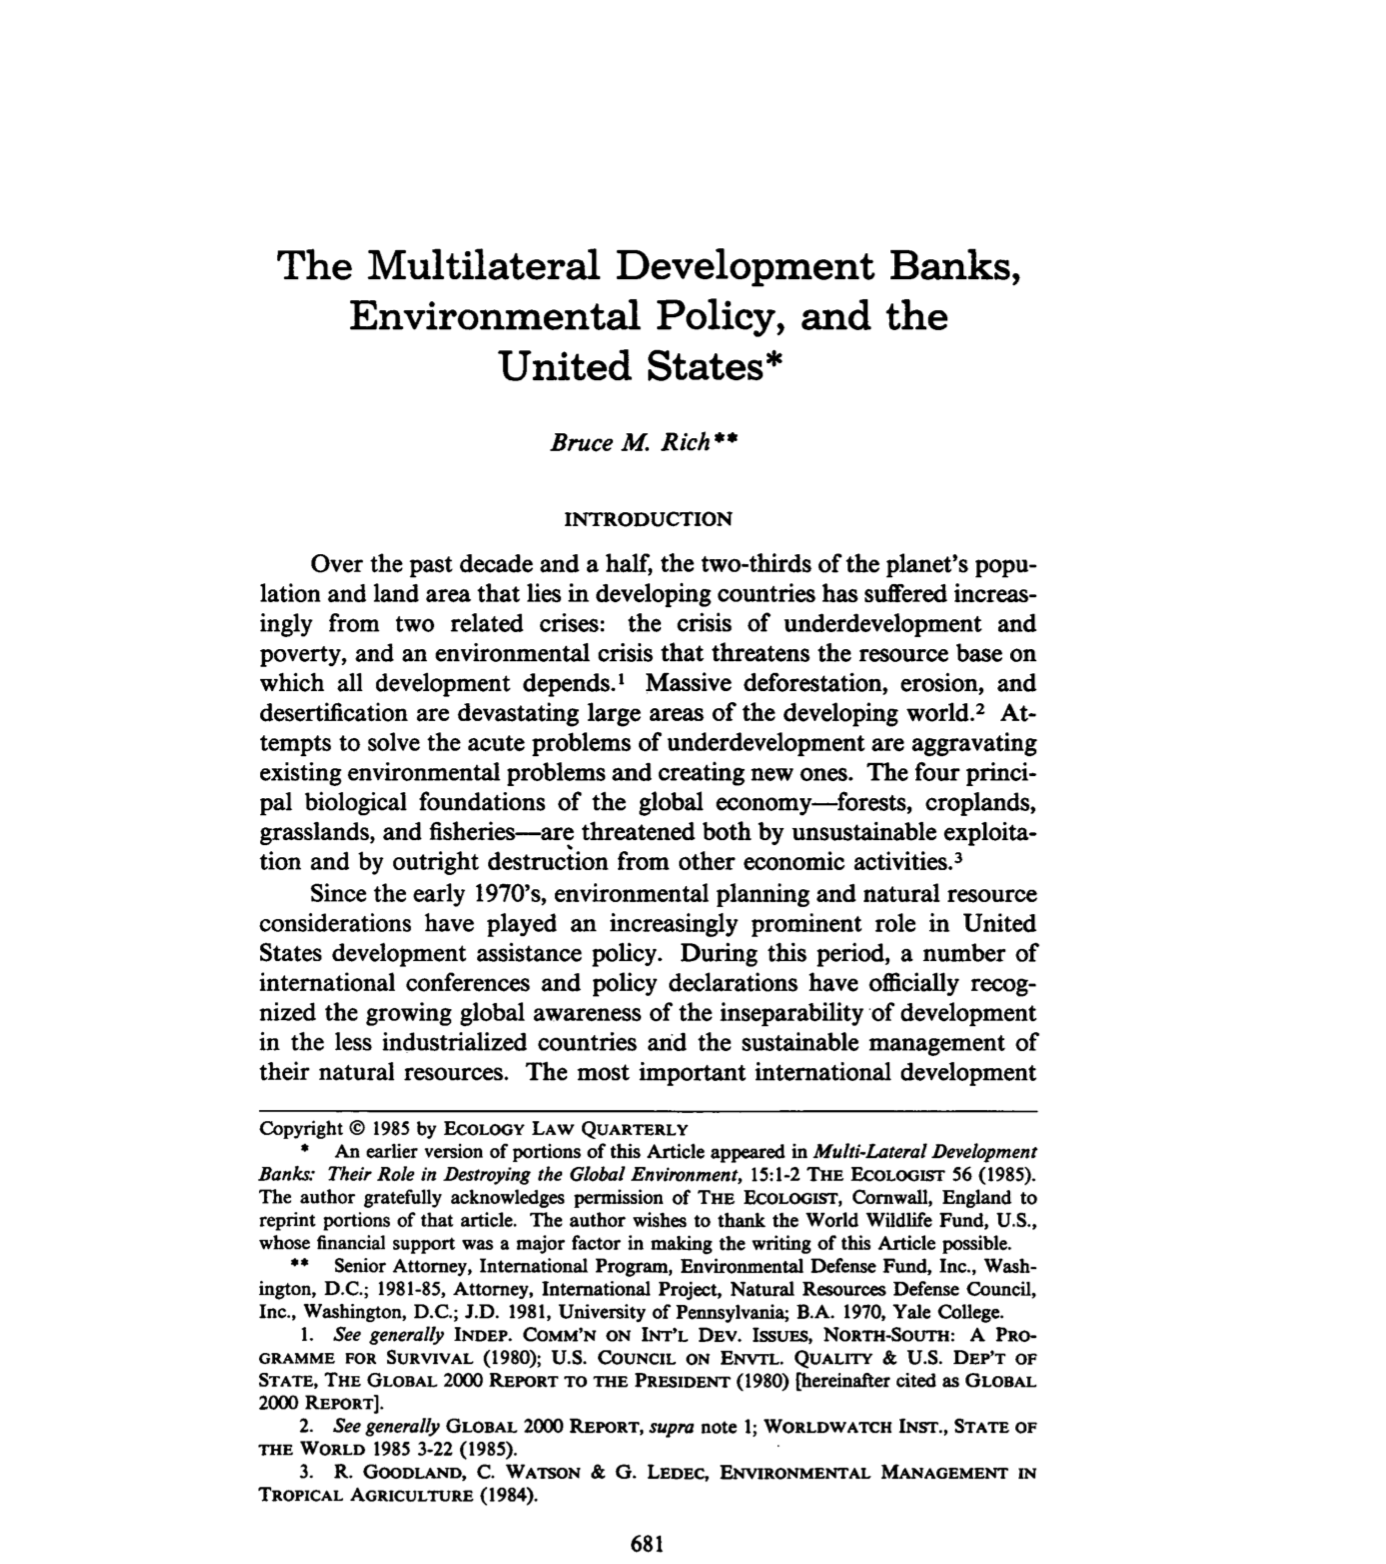 The Multilateral Develoment Banks, Environmental Policy, and the United States